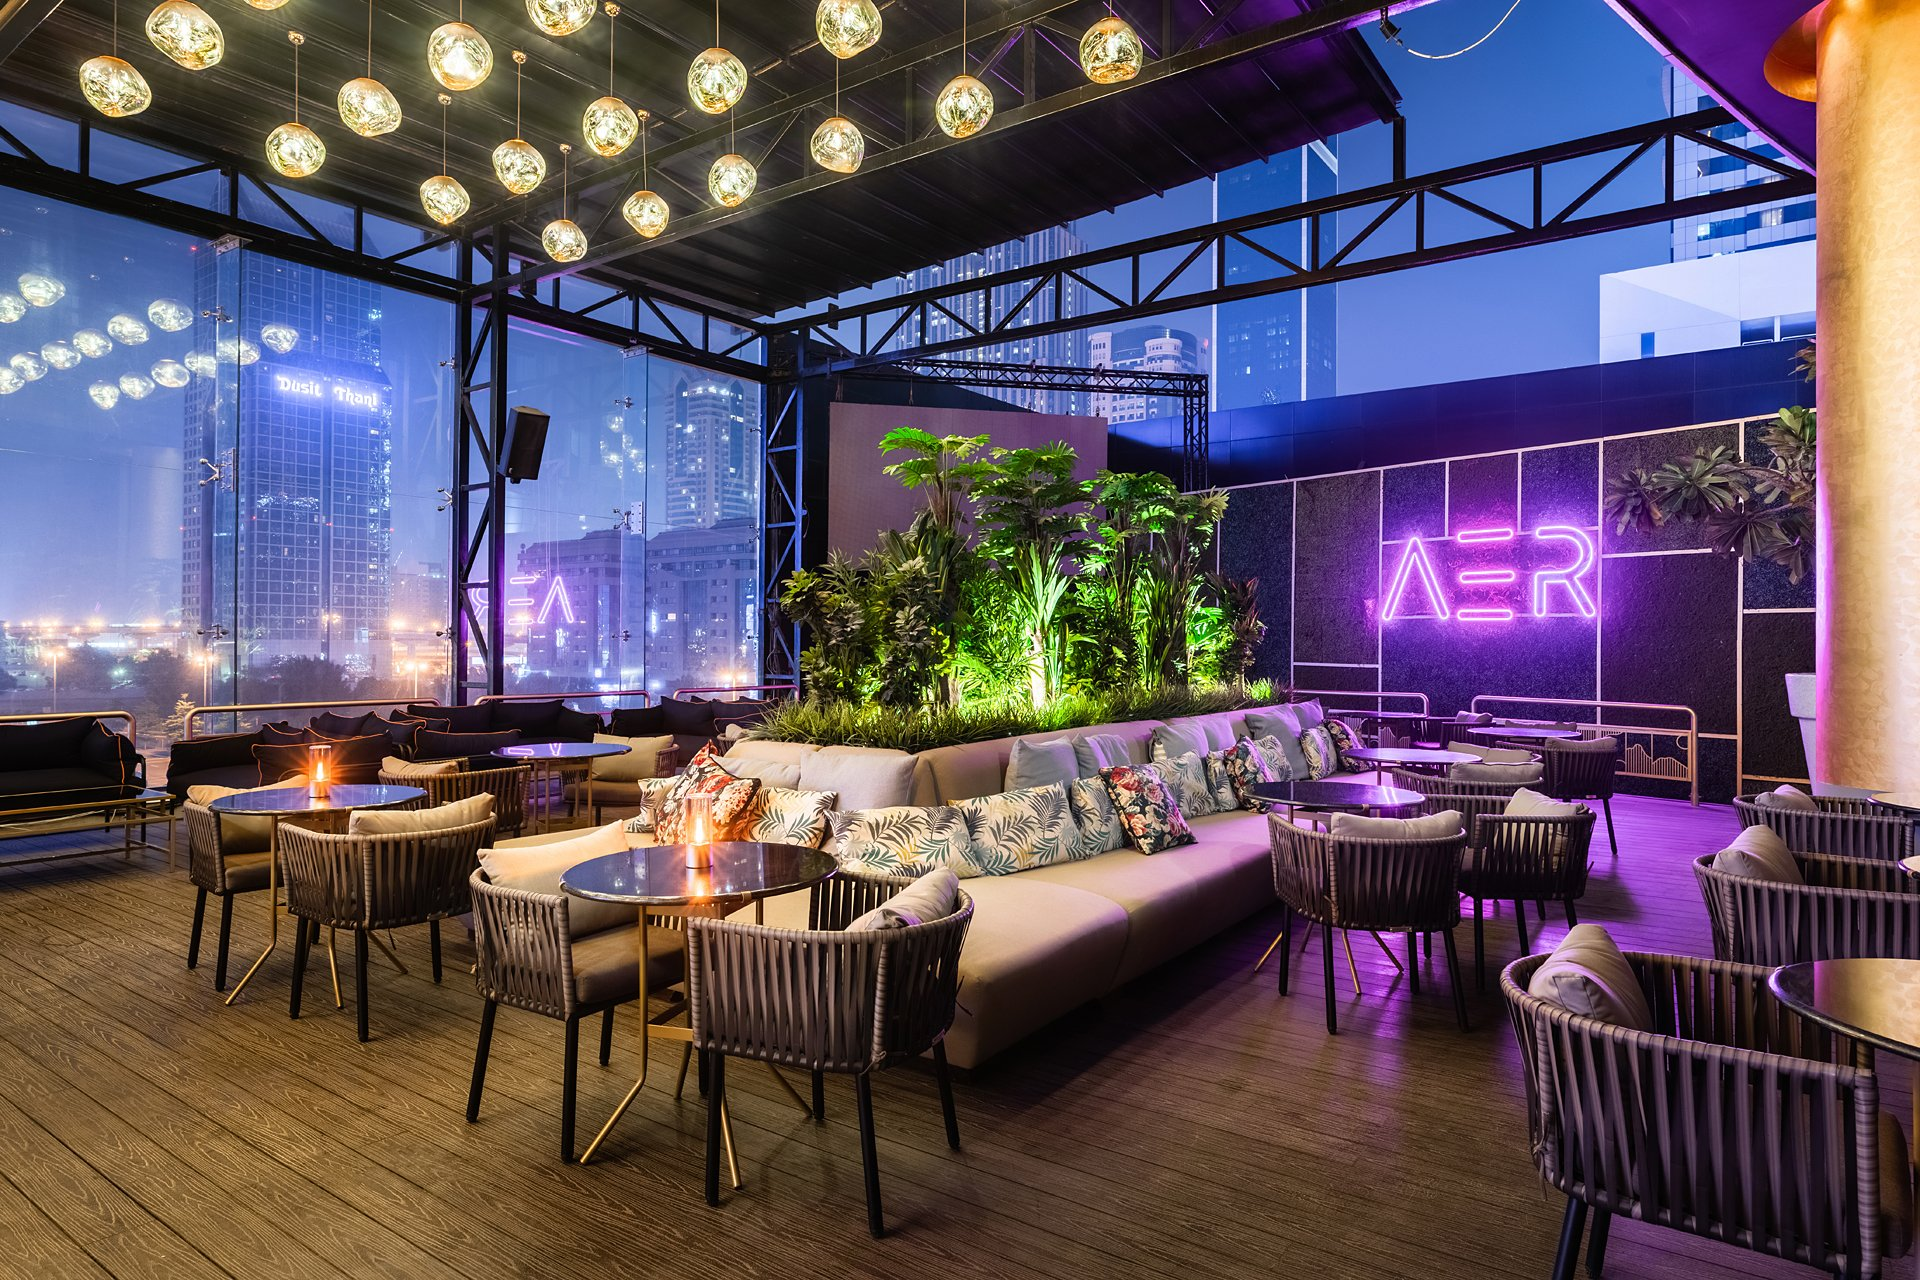 A.E.R Lounge & Bar Promotions